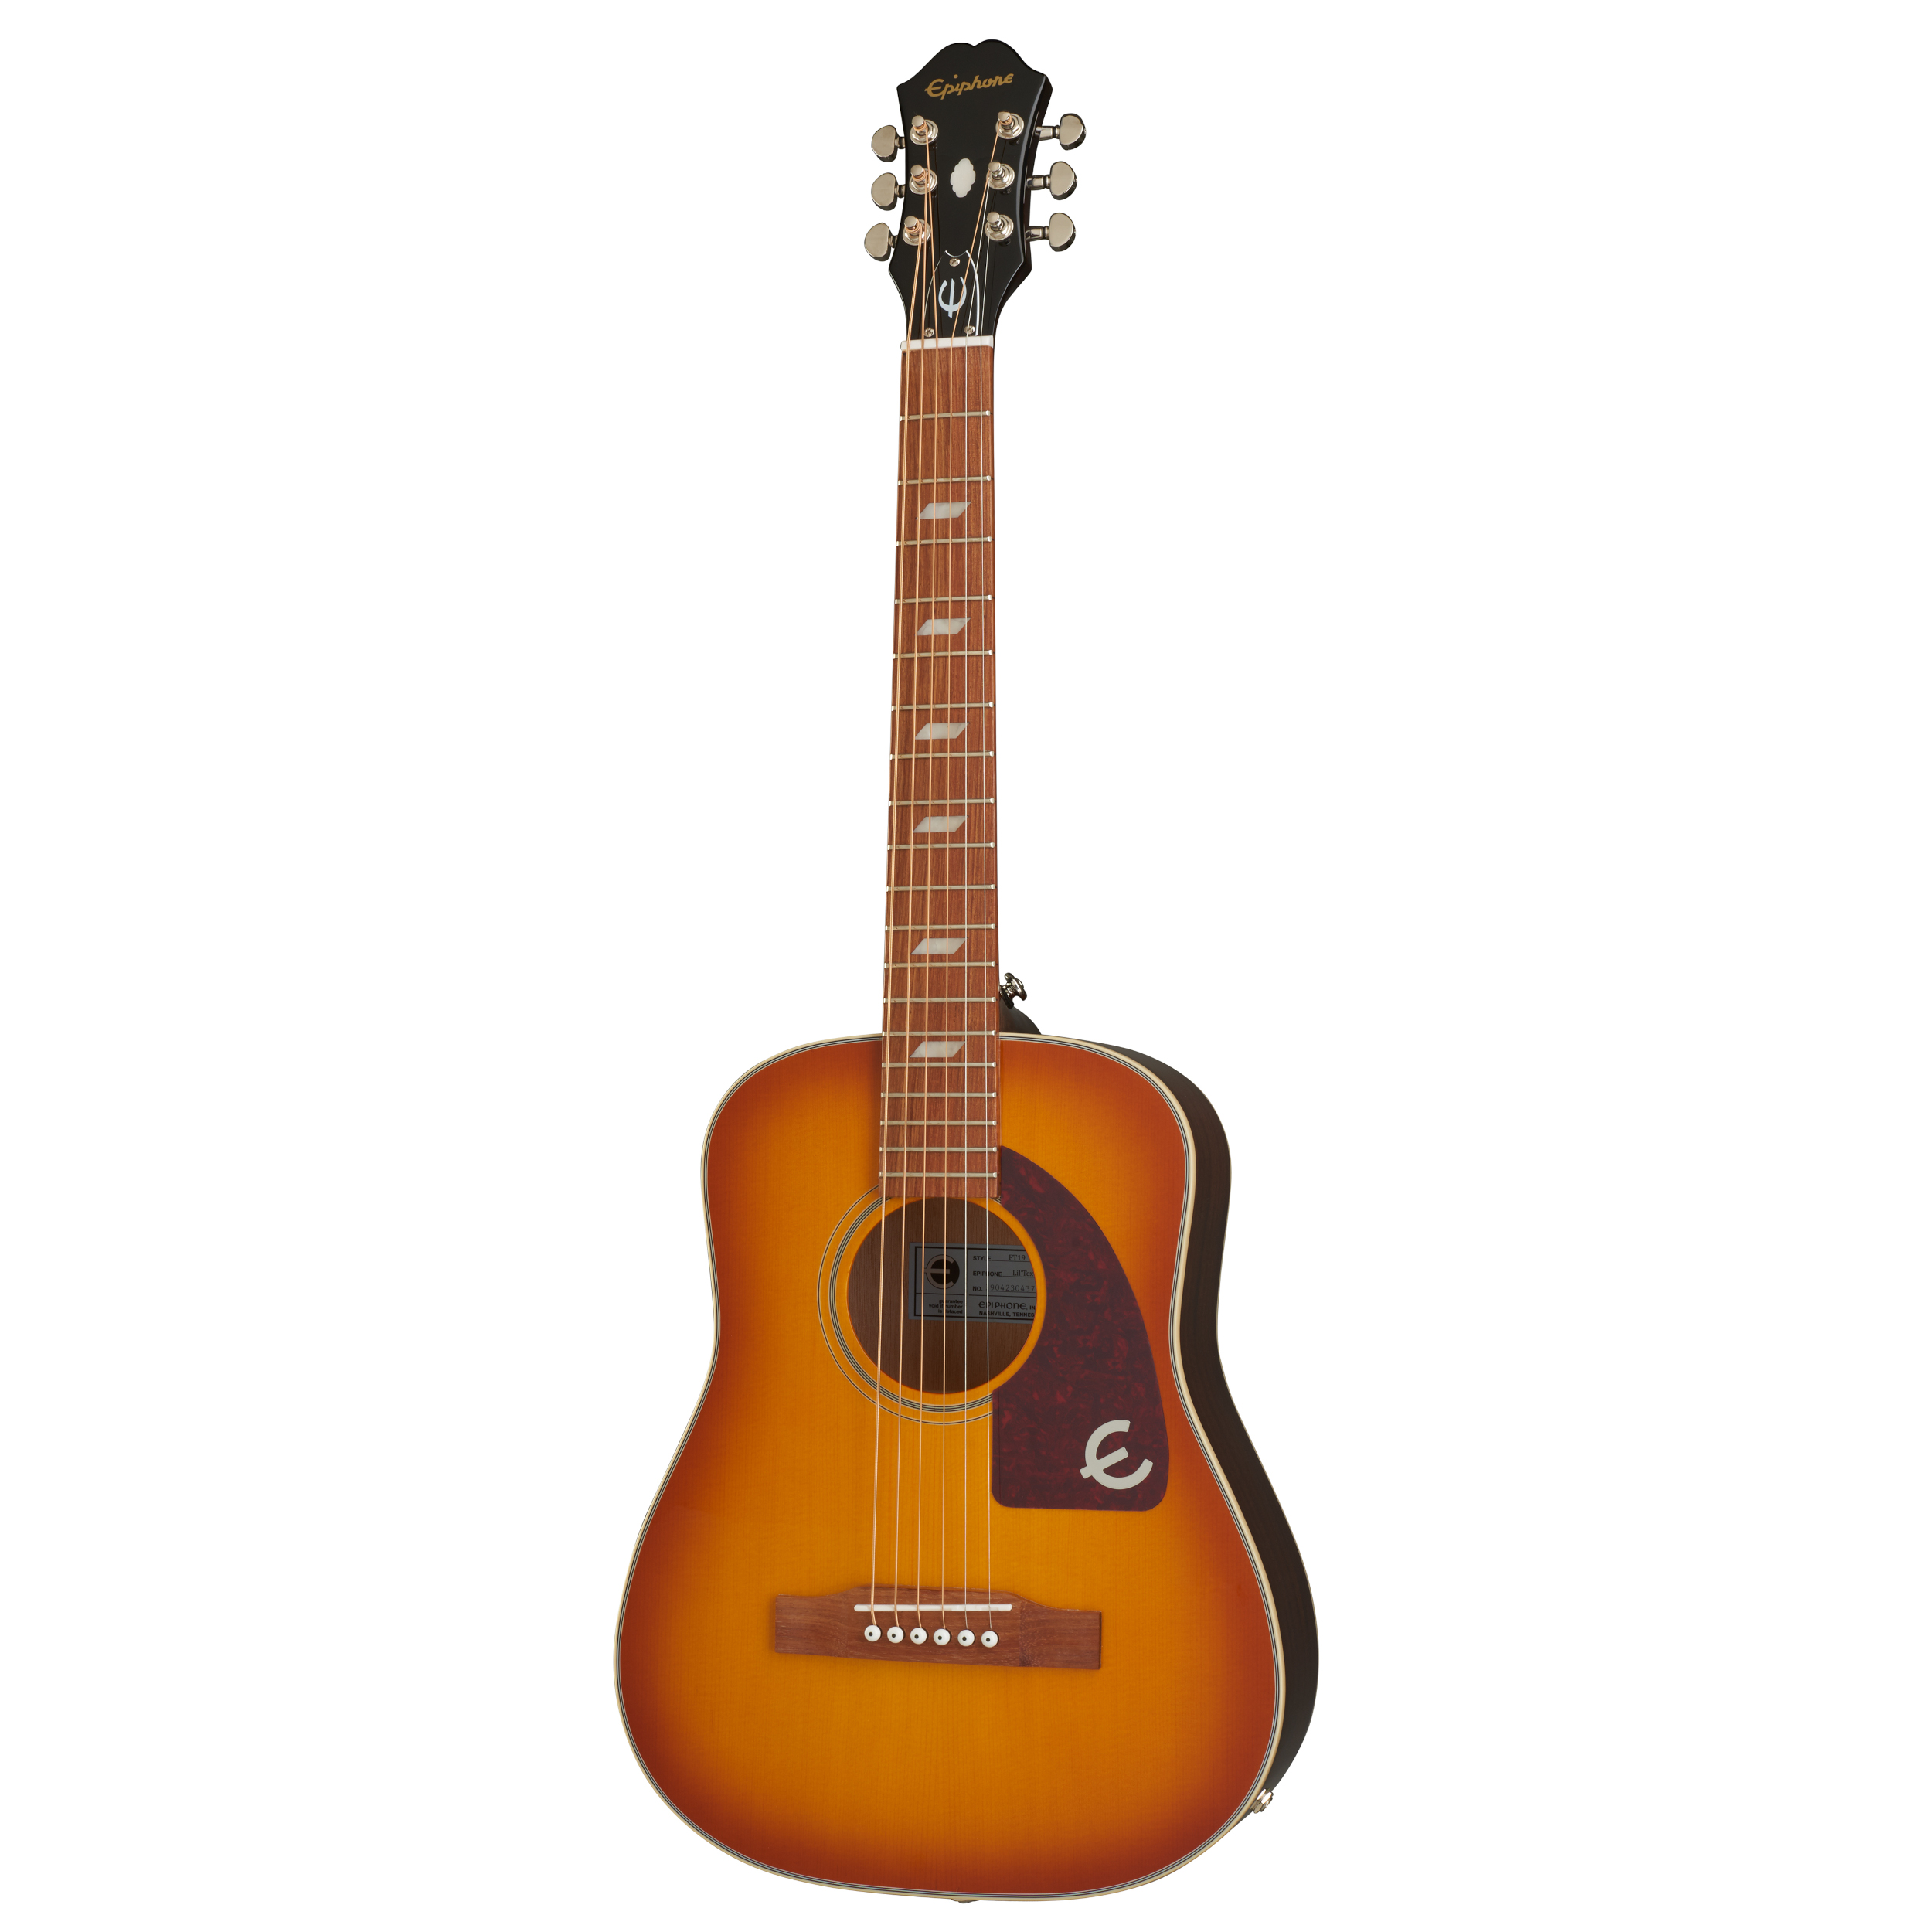 Epiphone Lil' Tex Travel Acoustic - Faded Cherry Guitar